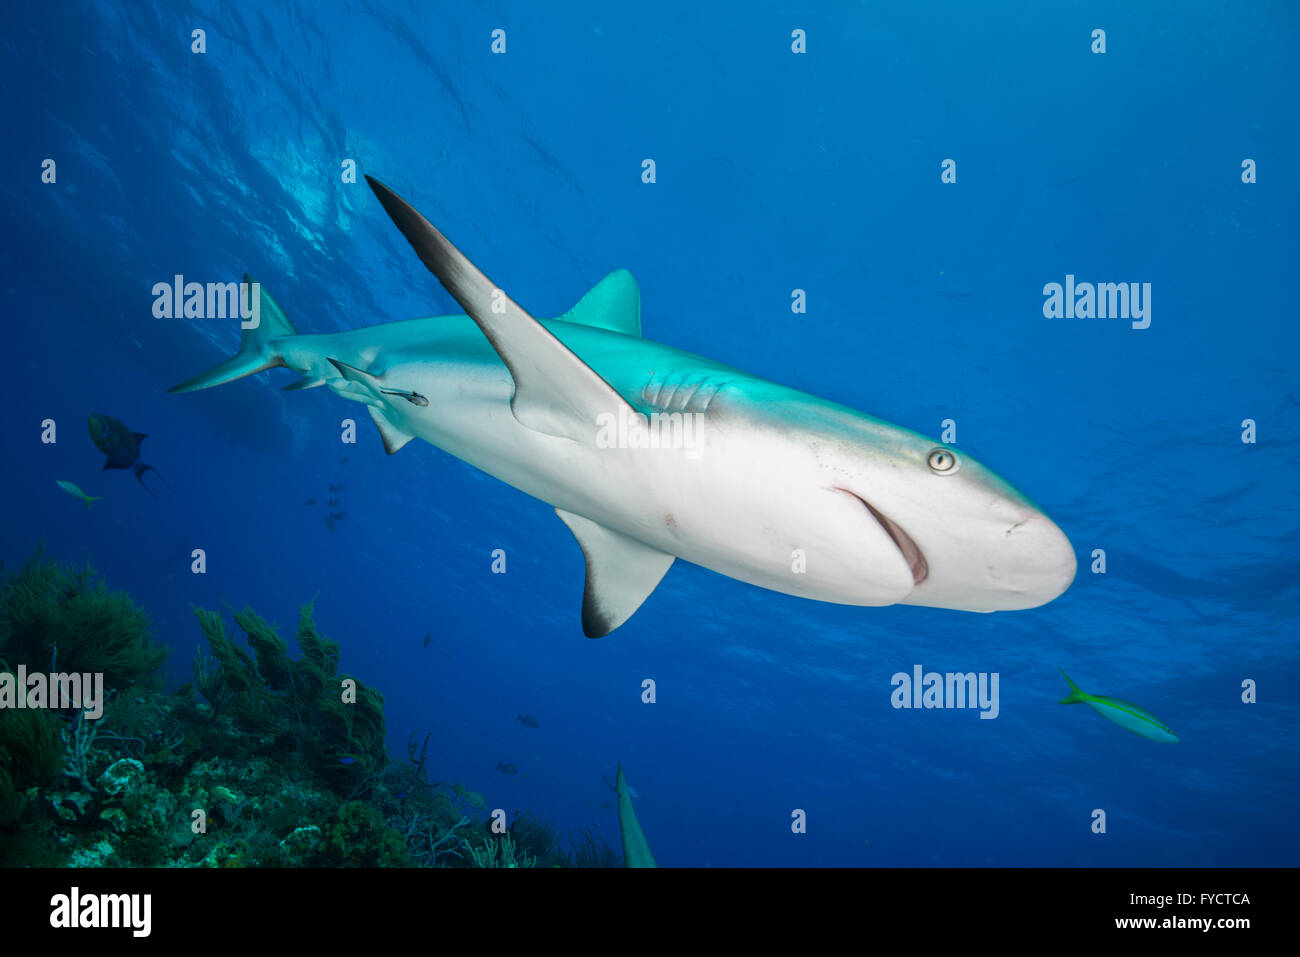 Caribbean reef shark, Carcharhinus perezi, swimming over coral reef, Bahamas Stock Photo